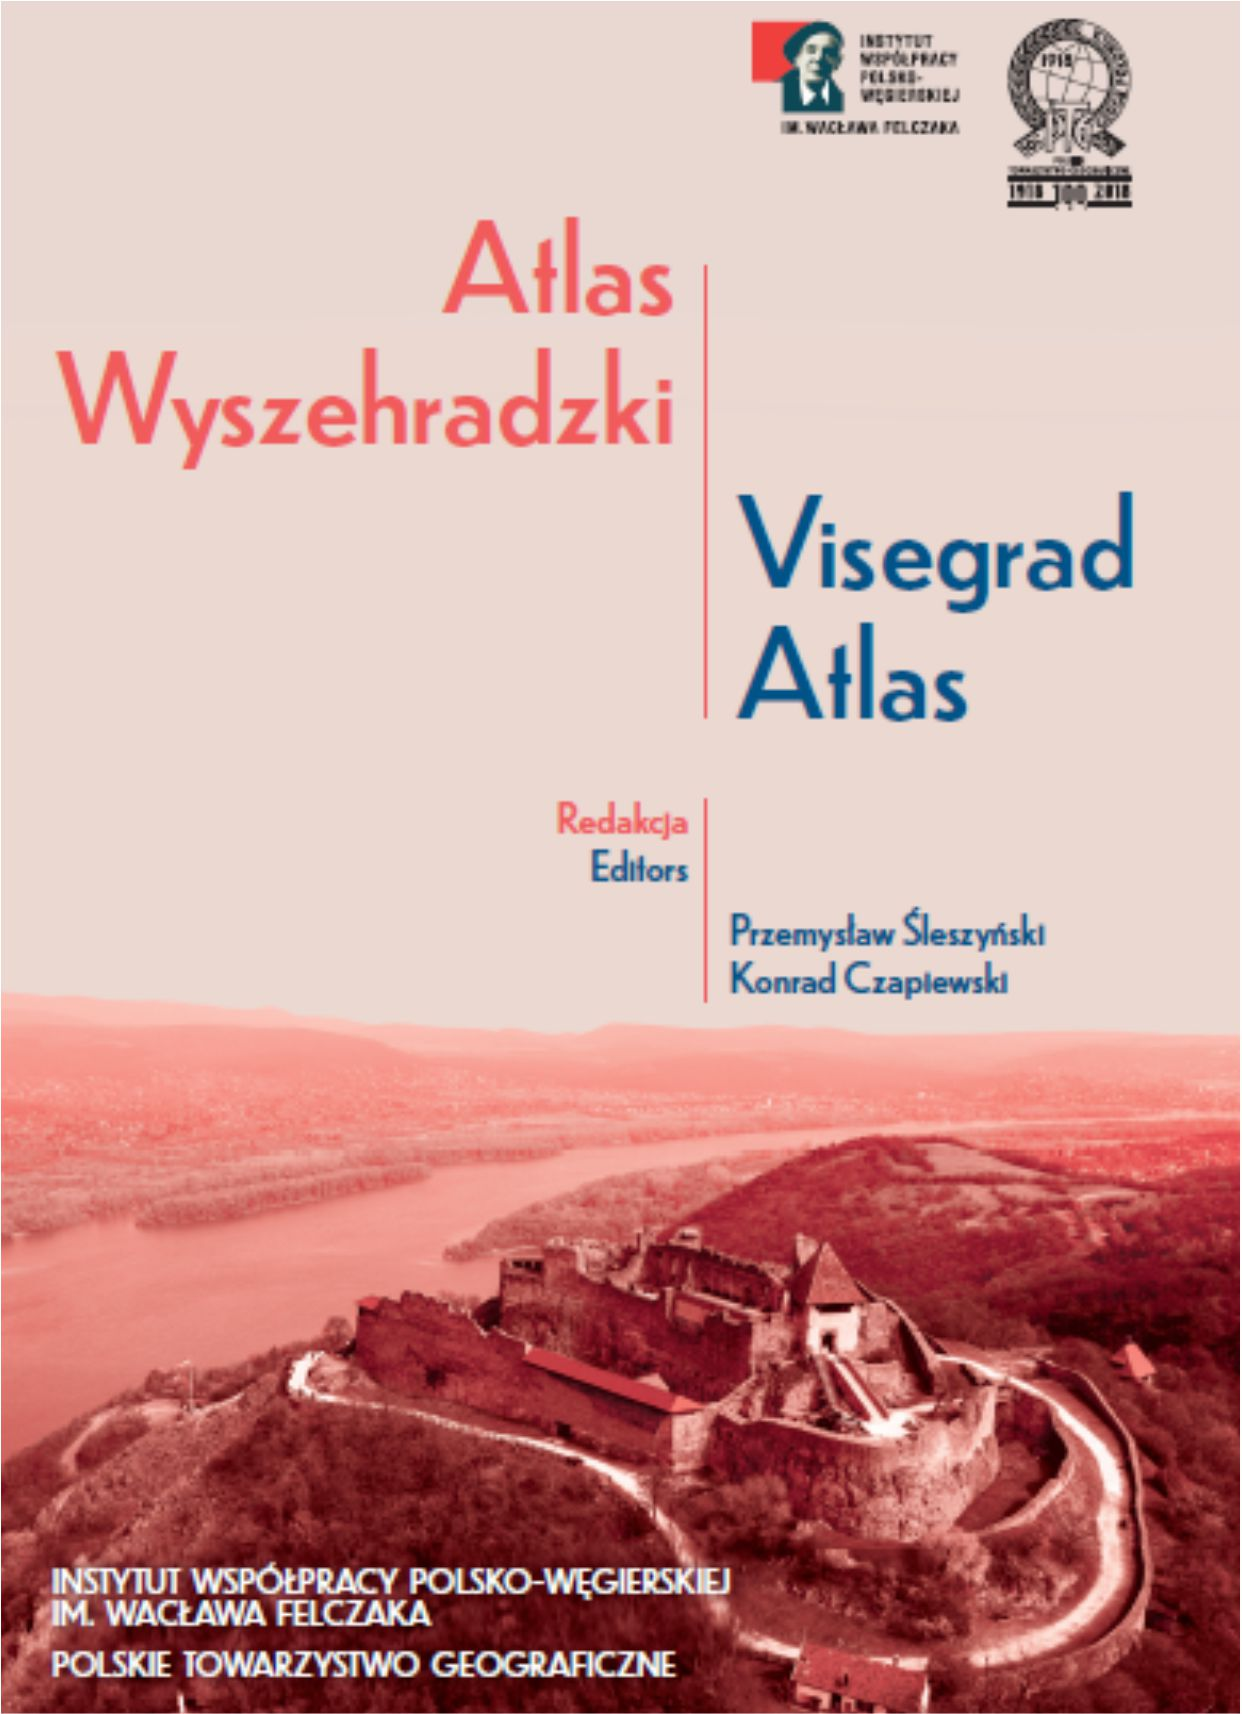 The Visegrad Atlas has been published